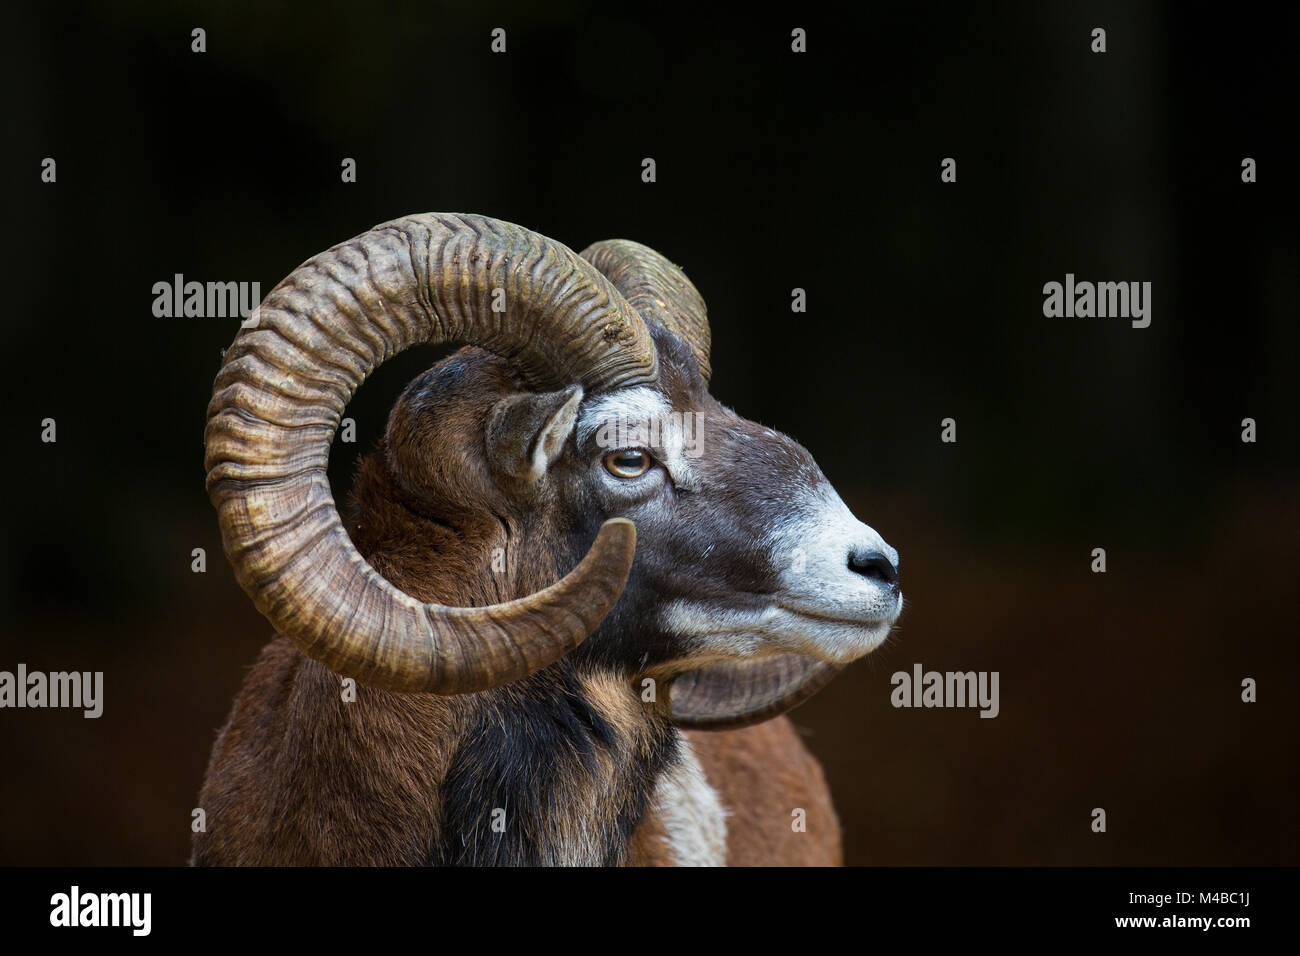 European mouflon (Ovis gmelini musimon / Ovis ammon / Ovis orientalis musimon) close up portrait of ram with big - Stock Image